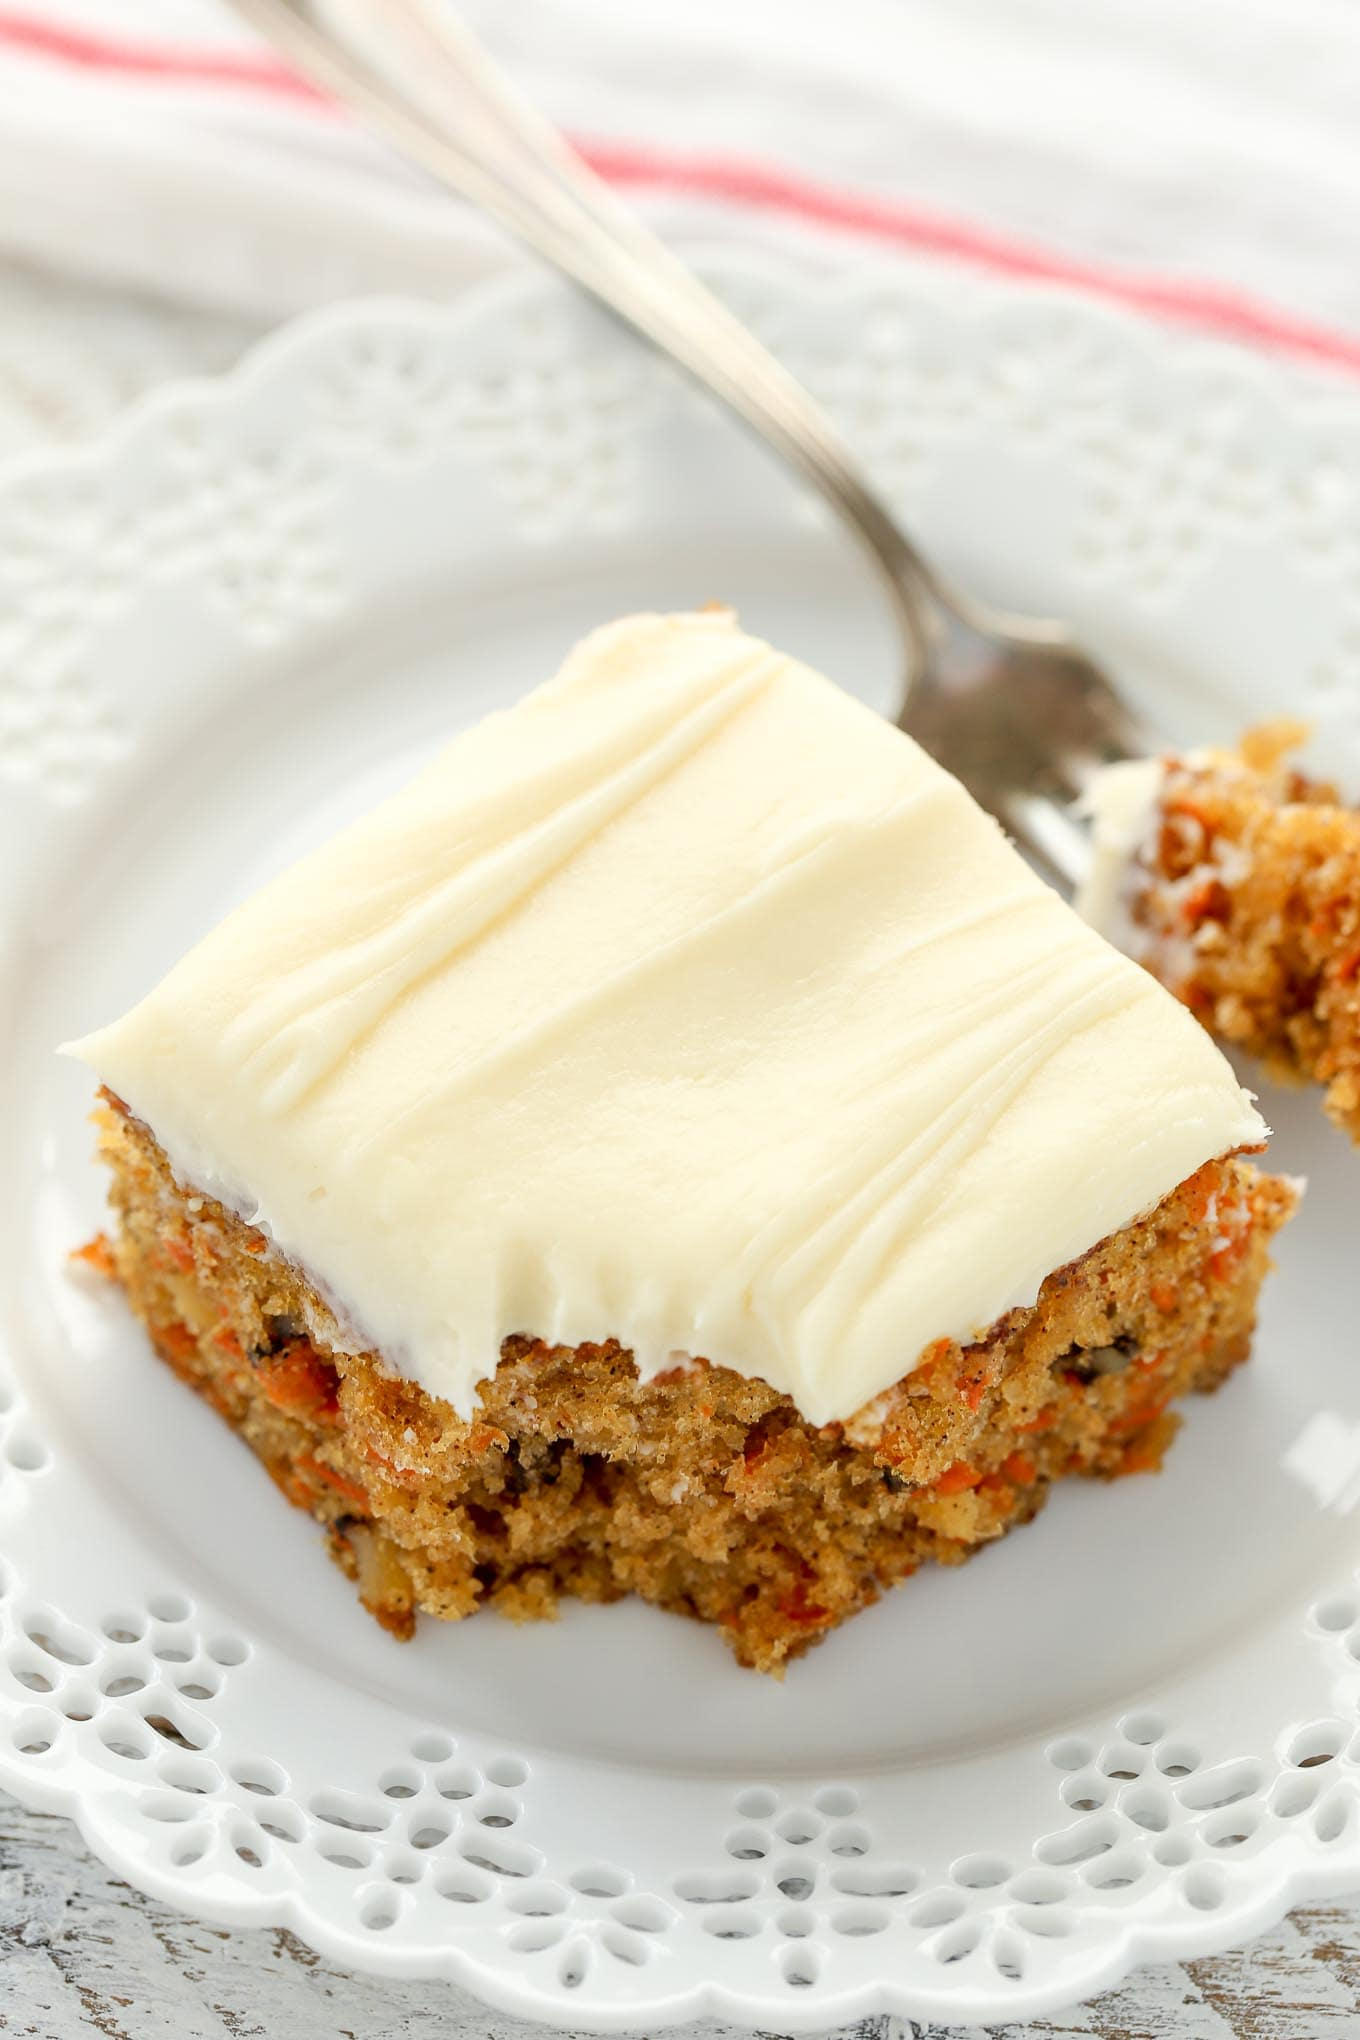 Pineapple Carrot Cake With Cream Cheese Frosting